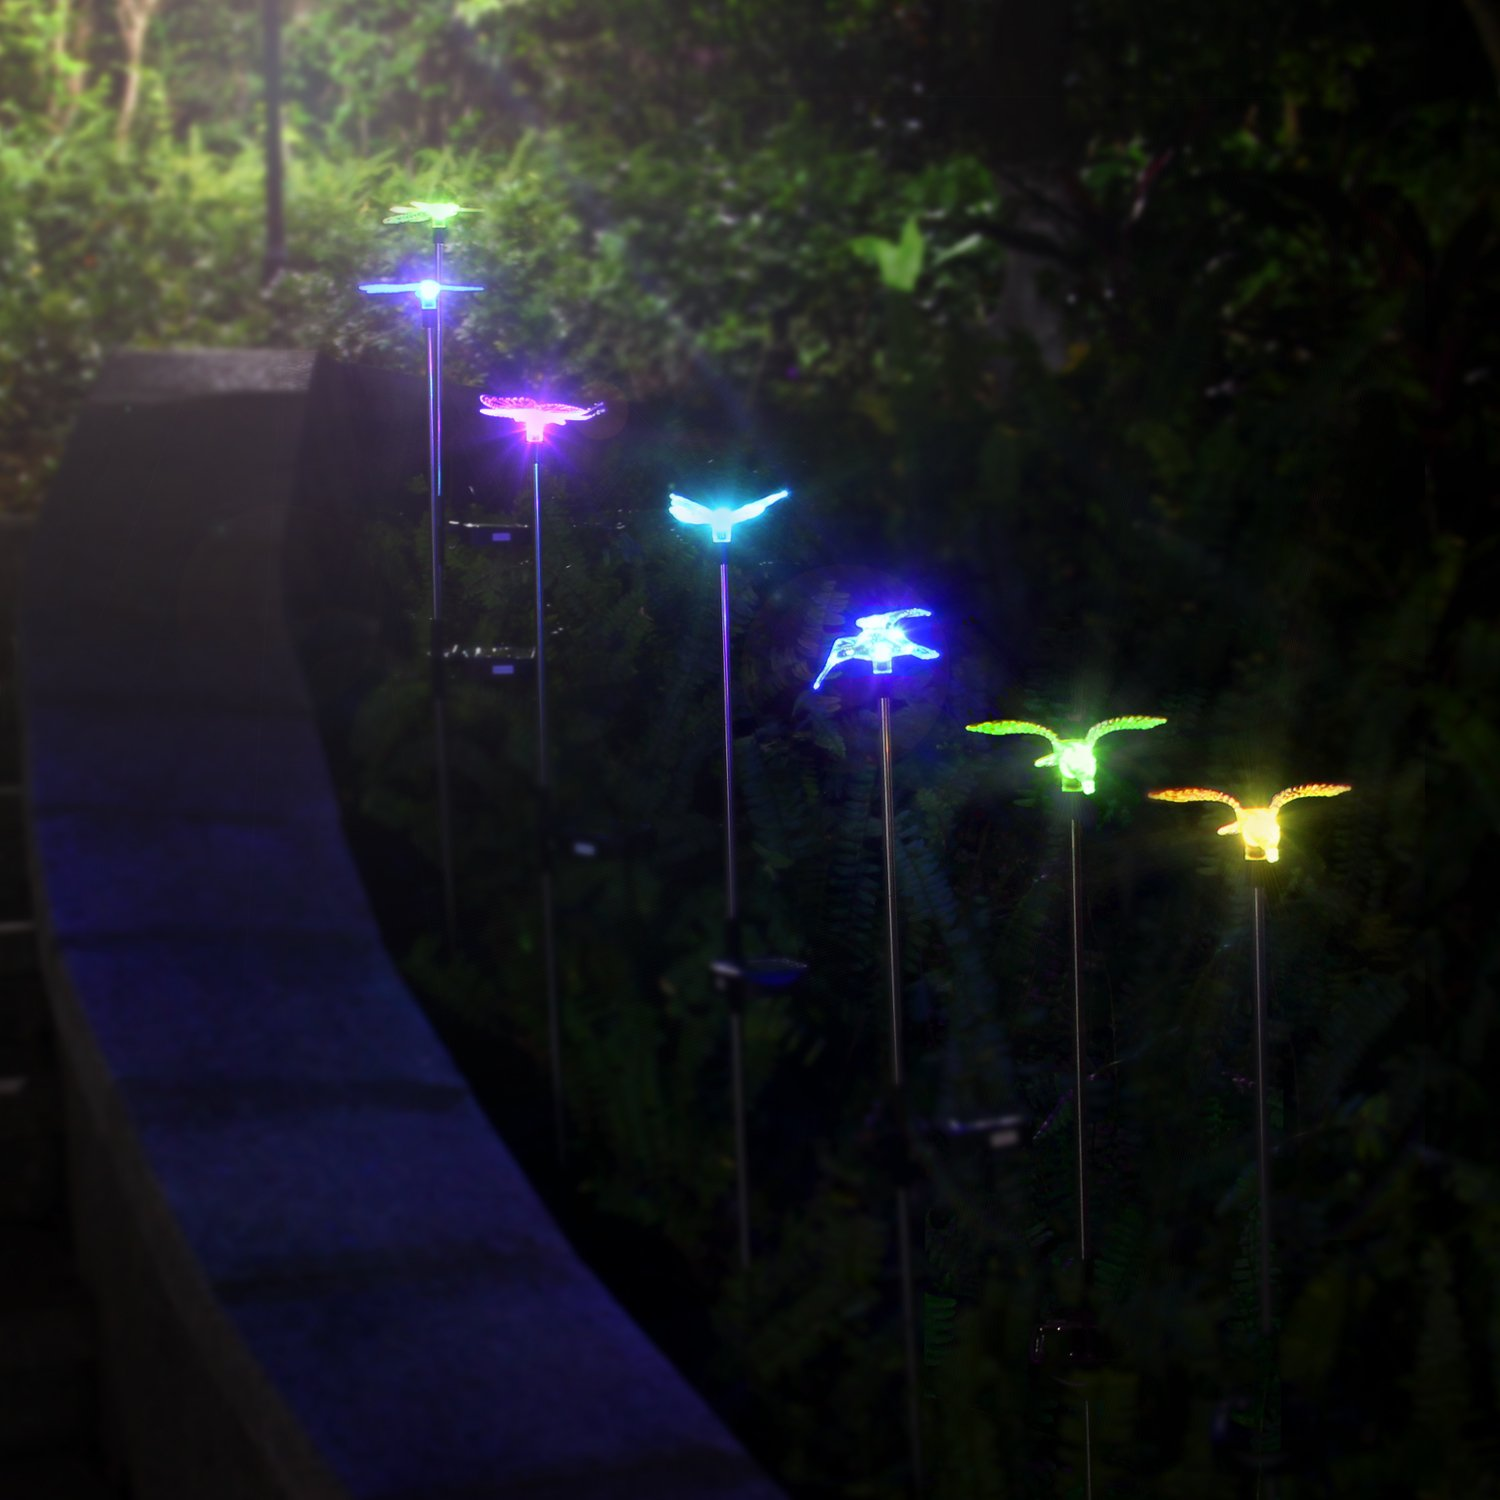 Oxyled Solar Garden Lights 3 Pack Solar Garden Stake Light Multi Color Changing Solar Powered